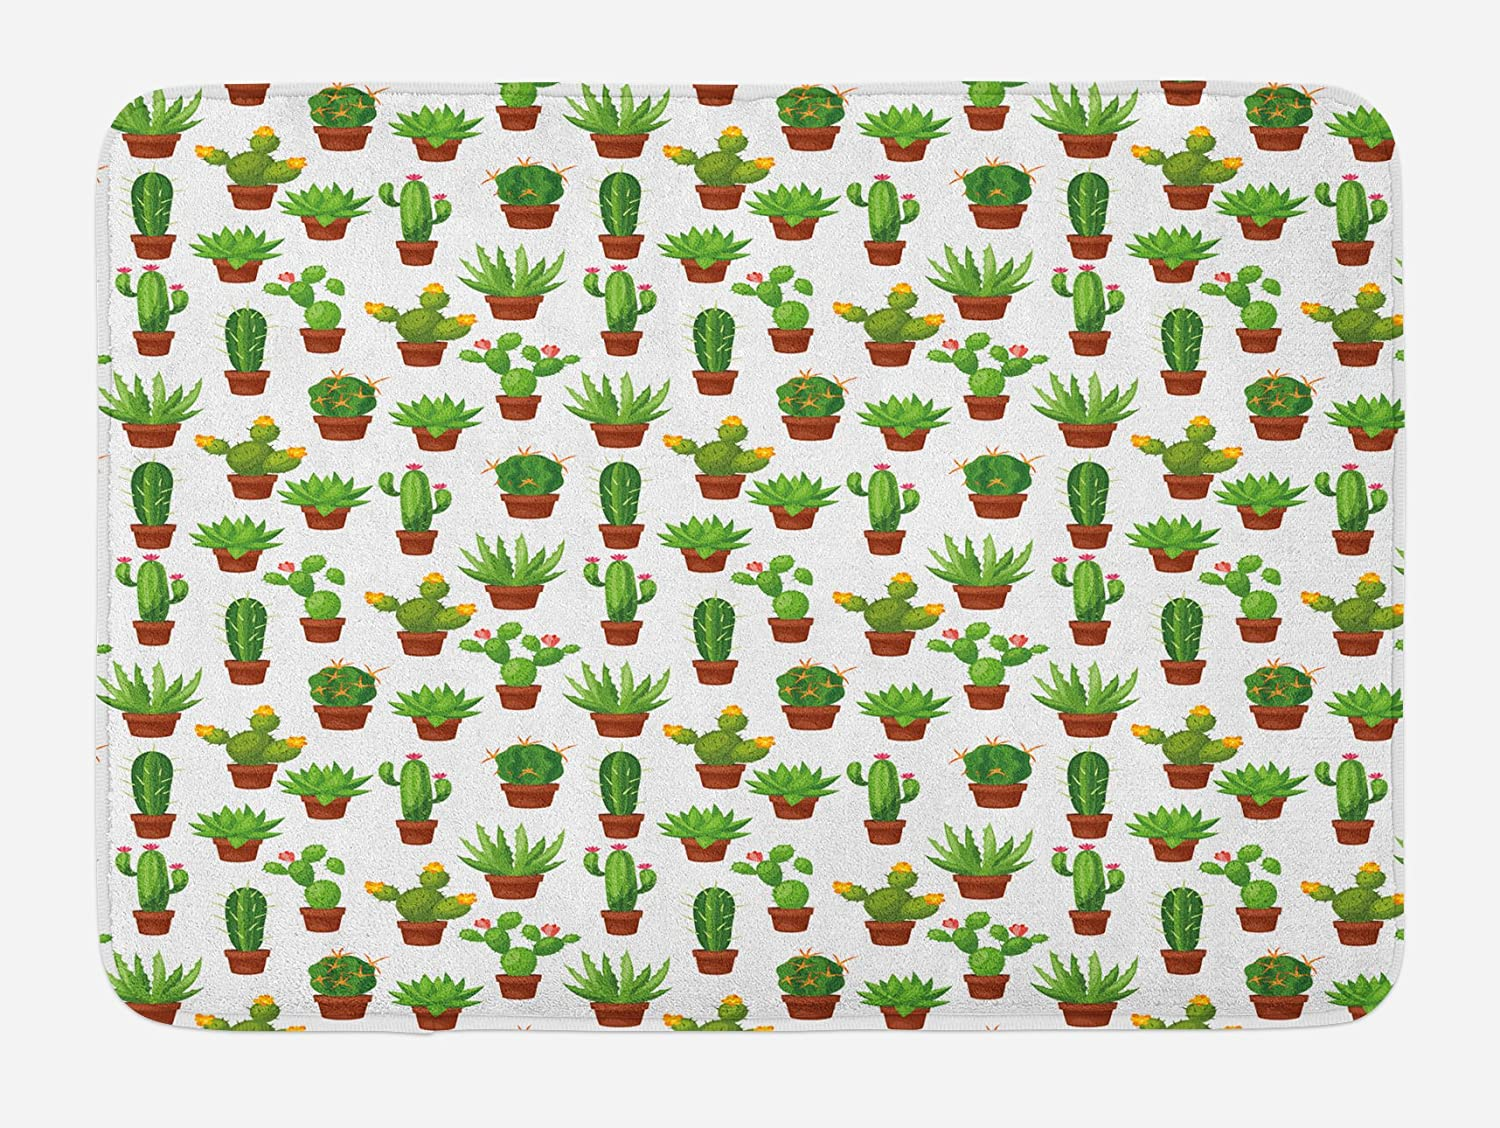 Lunarable Flowers Bath Mat, Floral Theme Abstract Illustration of Cactuses in Flower Pots Print, Plush Bathroom Decor Mat with Non Slip Backing, 29.5